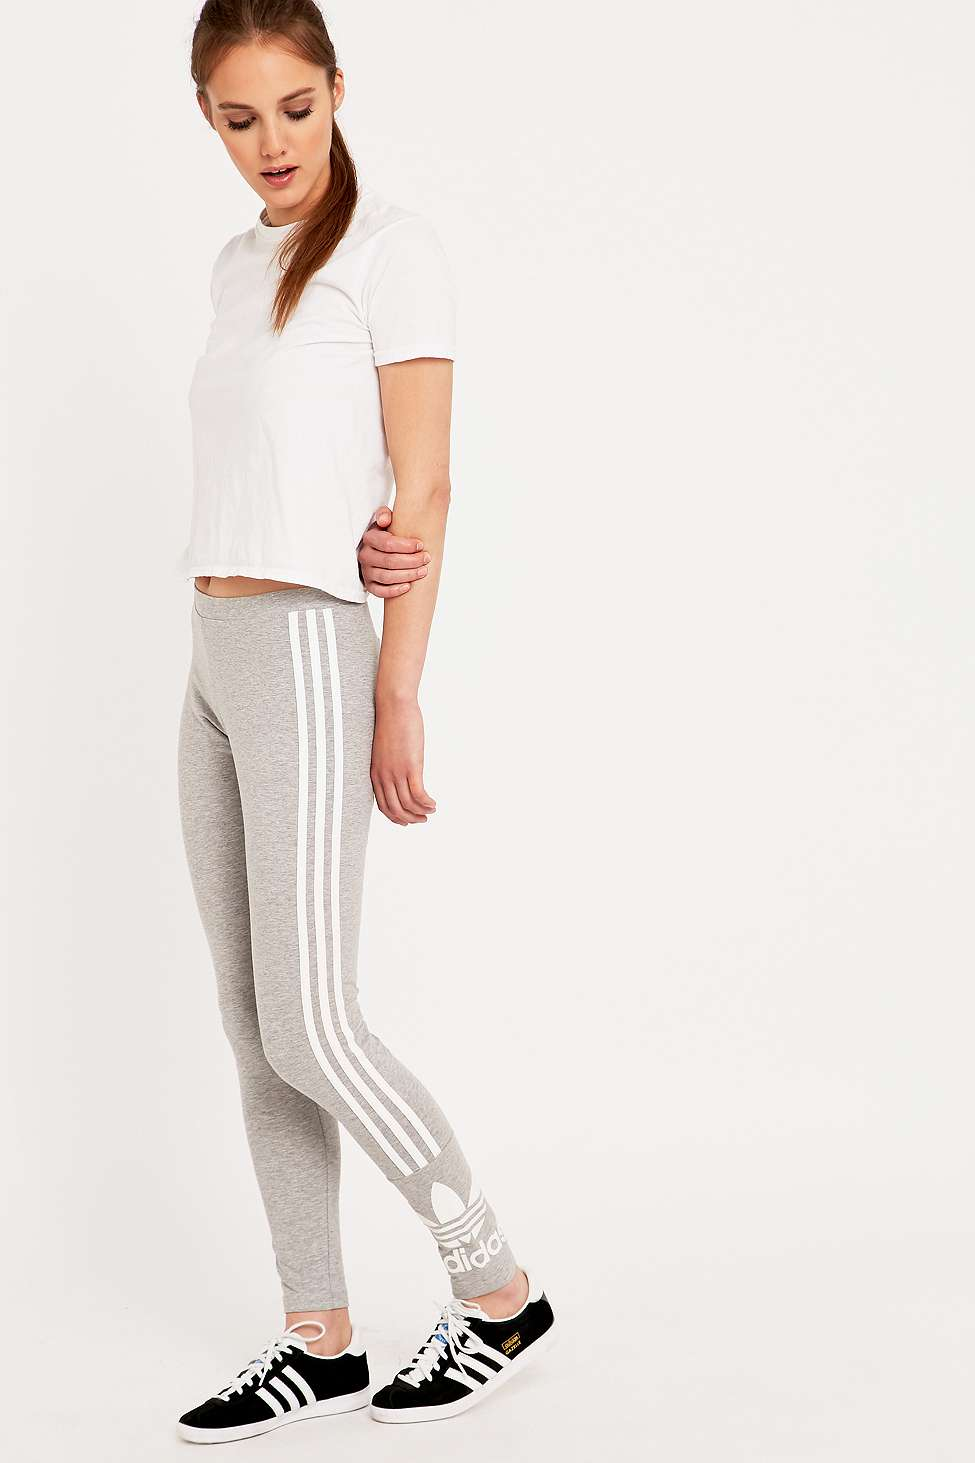 Adidas Originals tres Stripe leggings grises Urban Outfitters